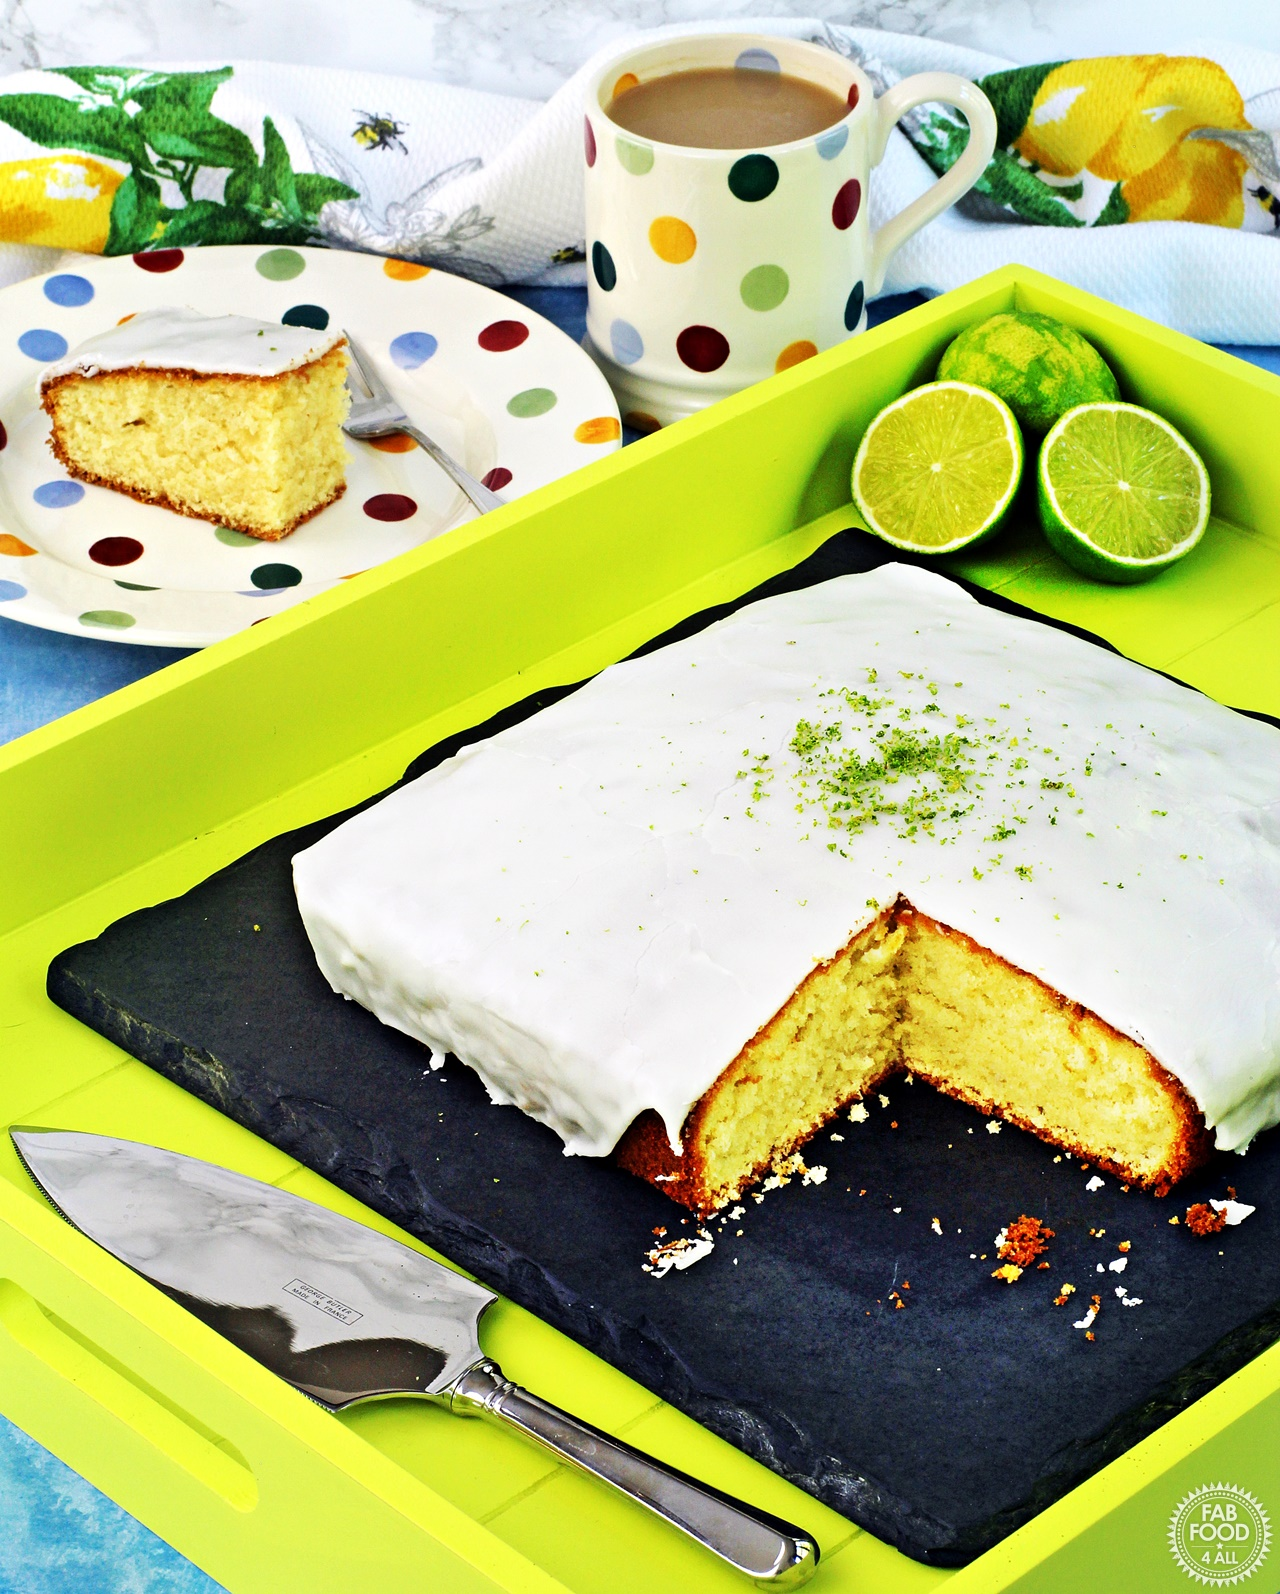 Easy Iced Lime Cake with cut slice.